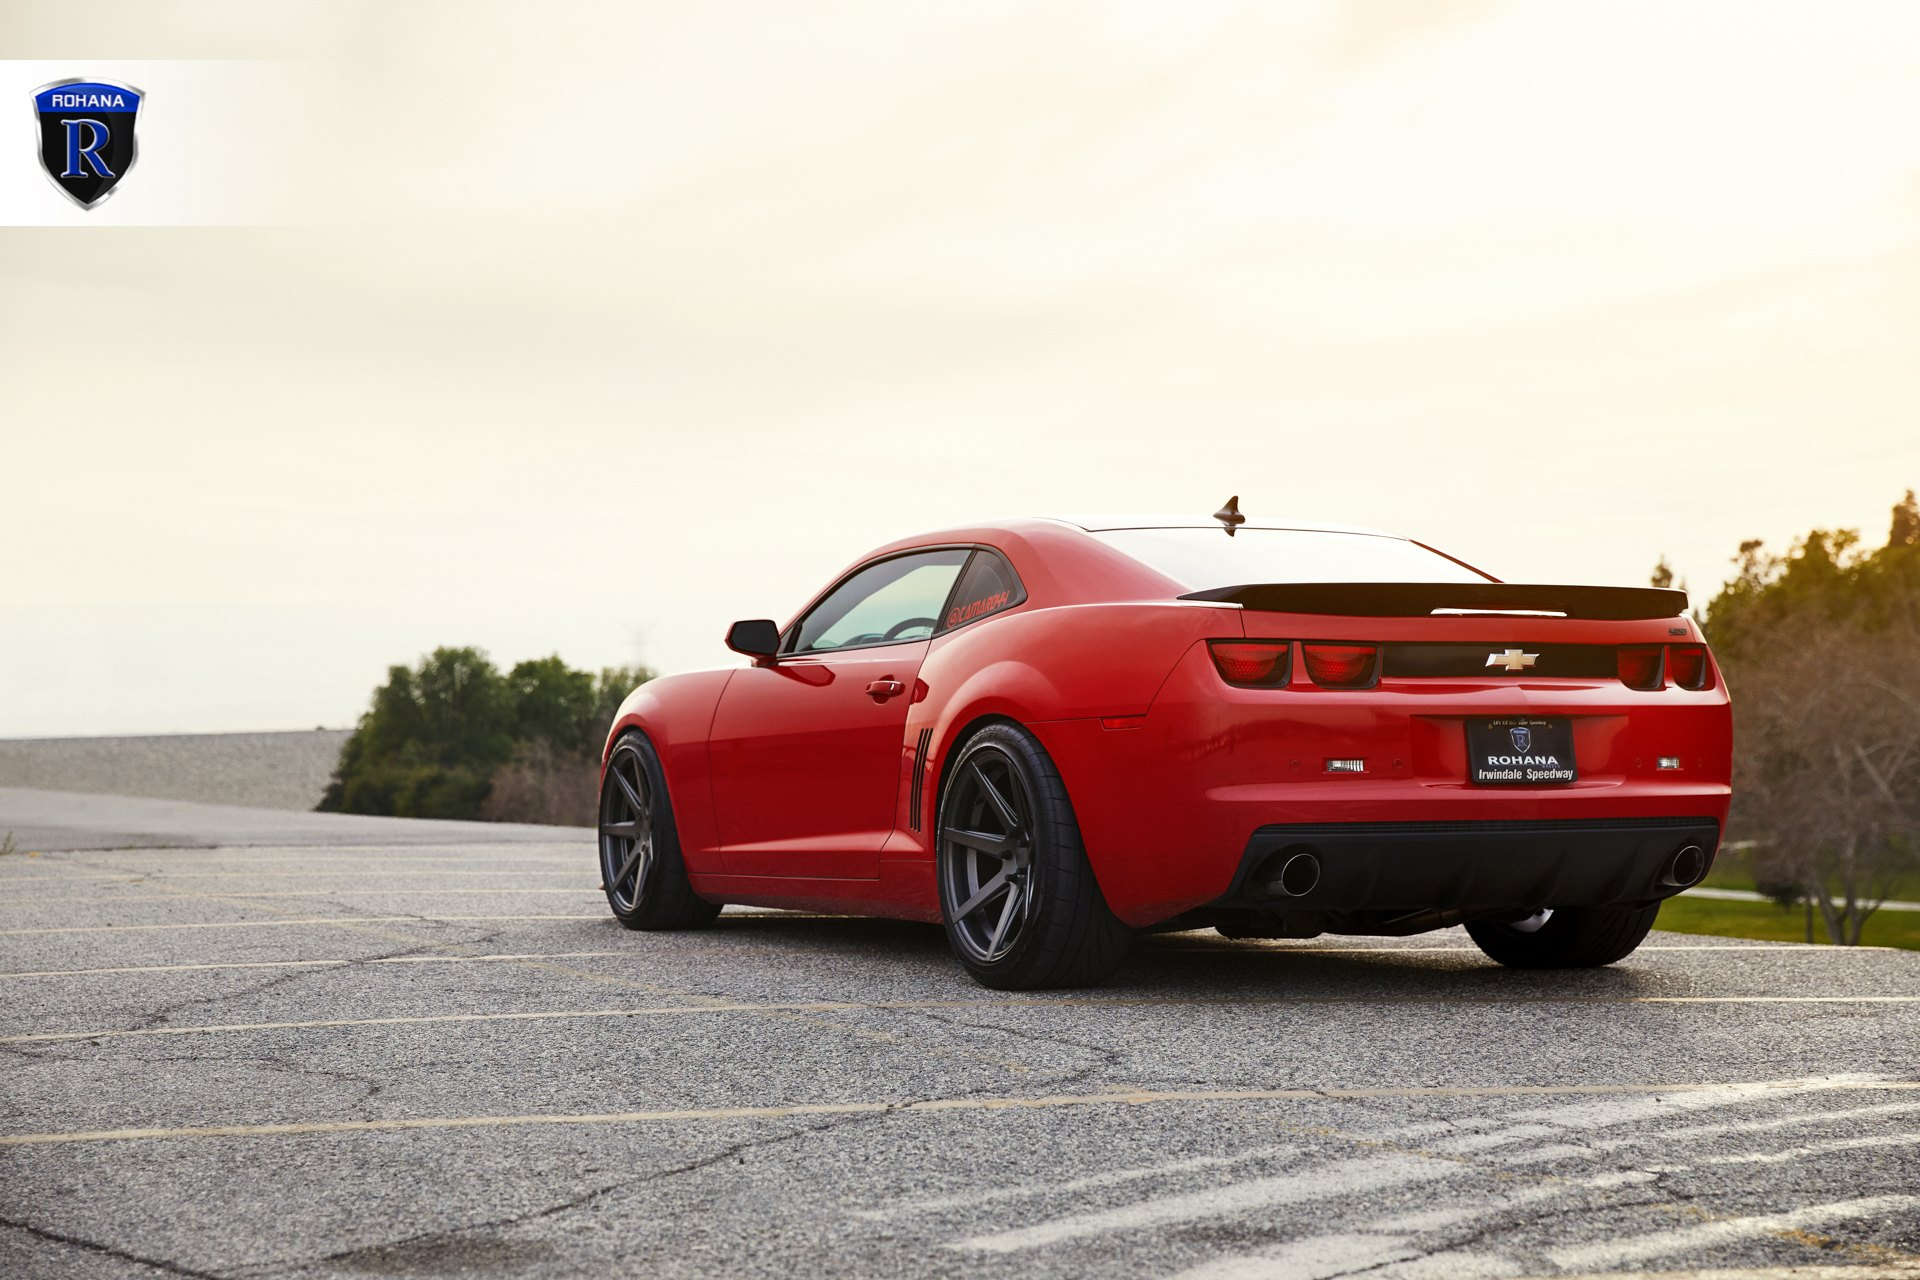 Red Chevy Camaro with Custom Style Rear Spoiler - Photo by Rohana Wheels